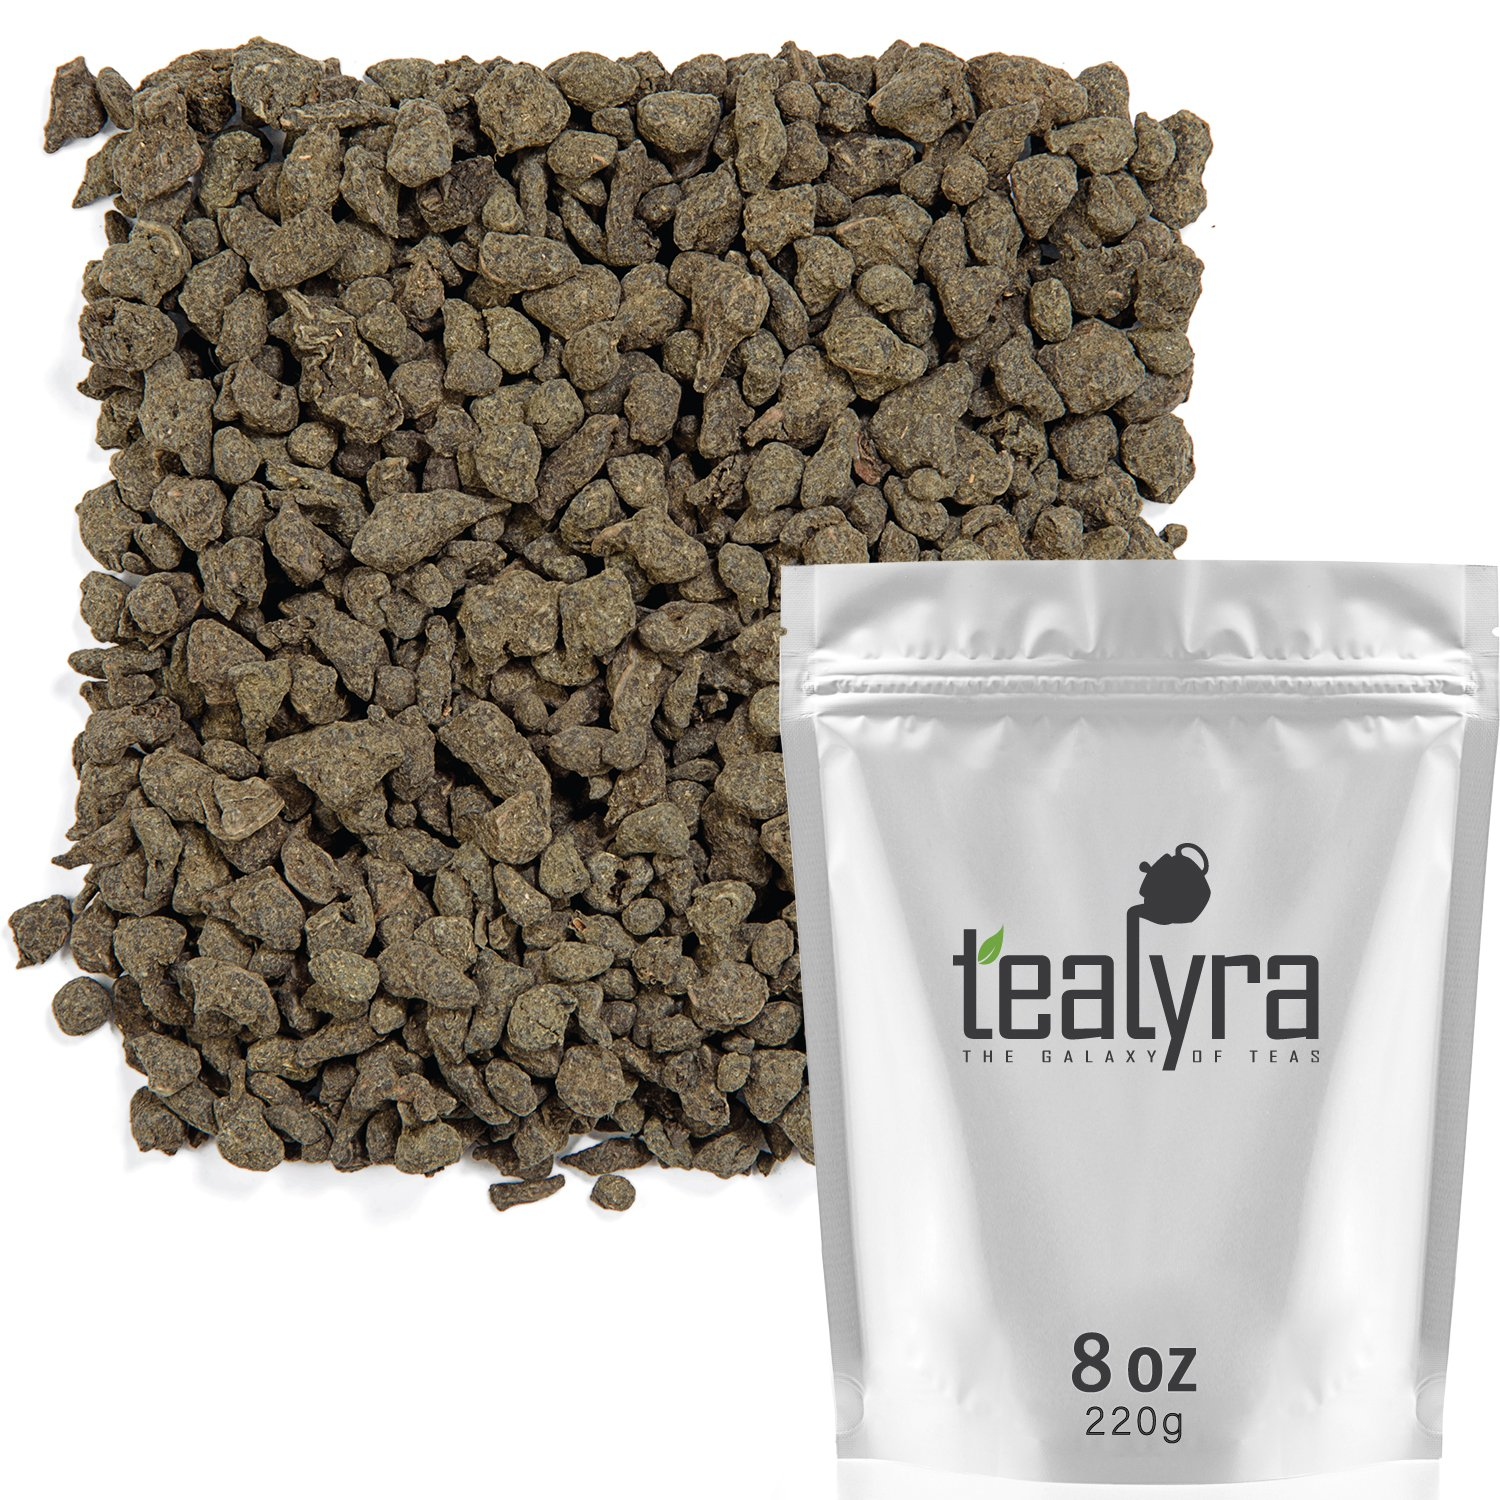 Tealyra - Imperial Ginseng Ren Shen - Oolong Loose Leaf Tea - Best Ginseng Tea - Energy Boost - Healthy Drink - Naturally Processed - 220g (8-ounce) by Tealyra